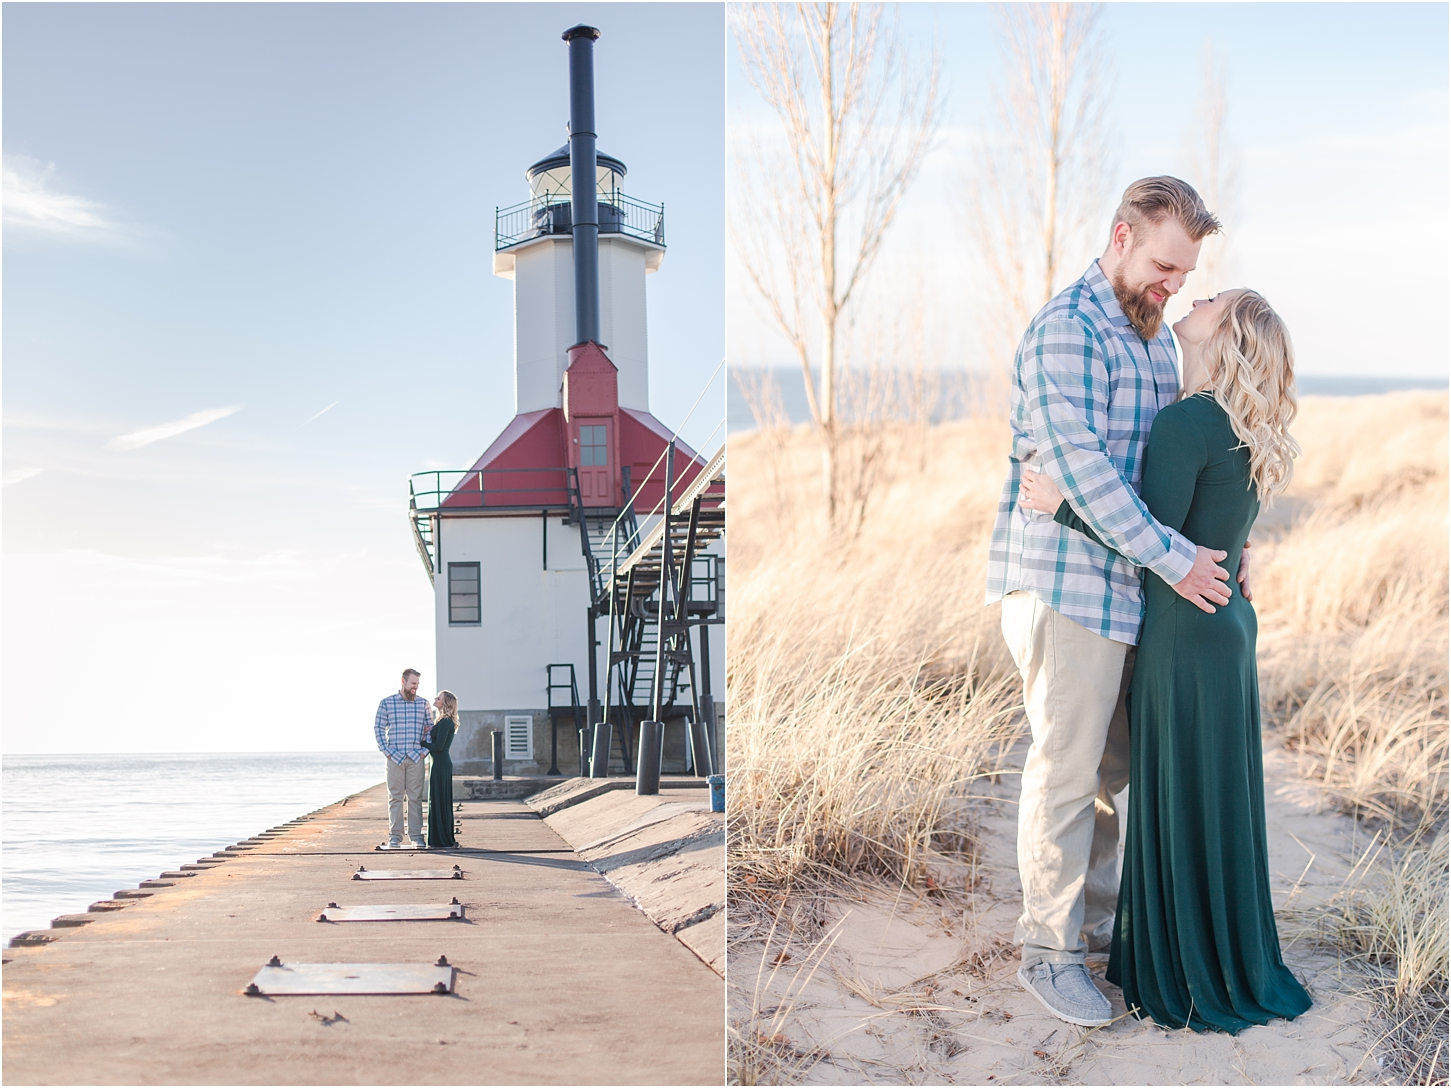 romantic-sunset-beach-engagement-photos-at-silver-beach-in-saint-joseph-mi-by-courtney-carolyn-photography_0007.jpg